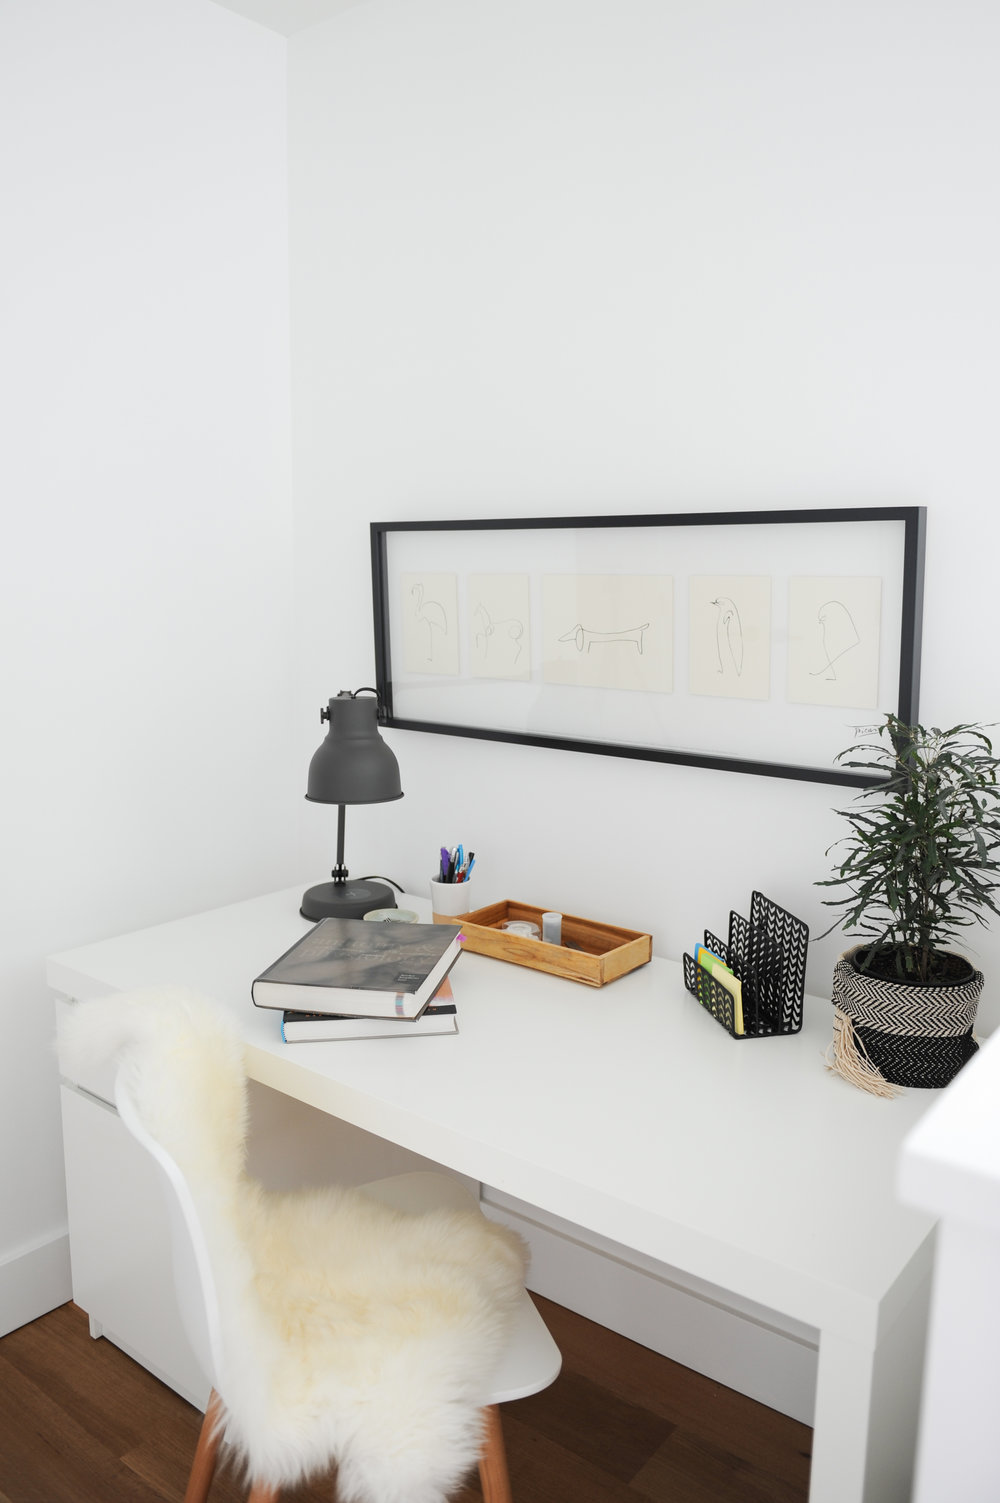 A home office set up, including a white chair with a sheep skin rug draped over it and a white desk with various office supplies such as books and desk lamp sits in front of a large frame.